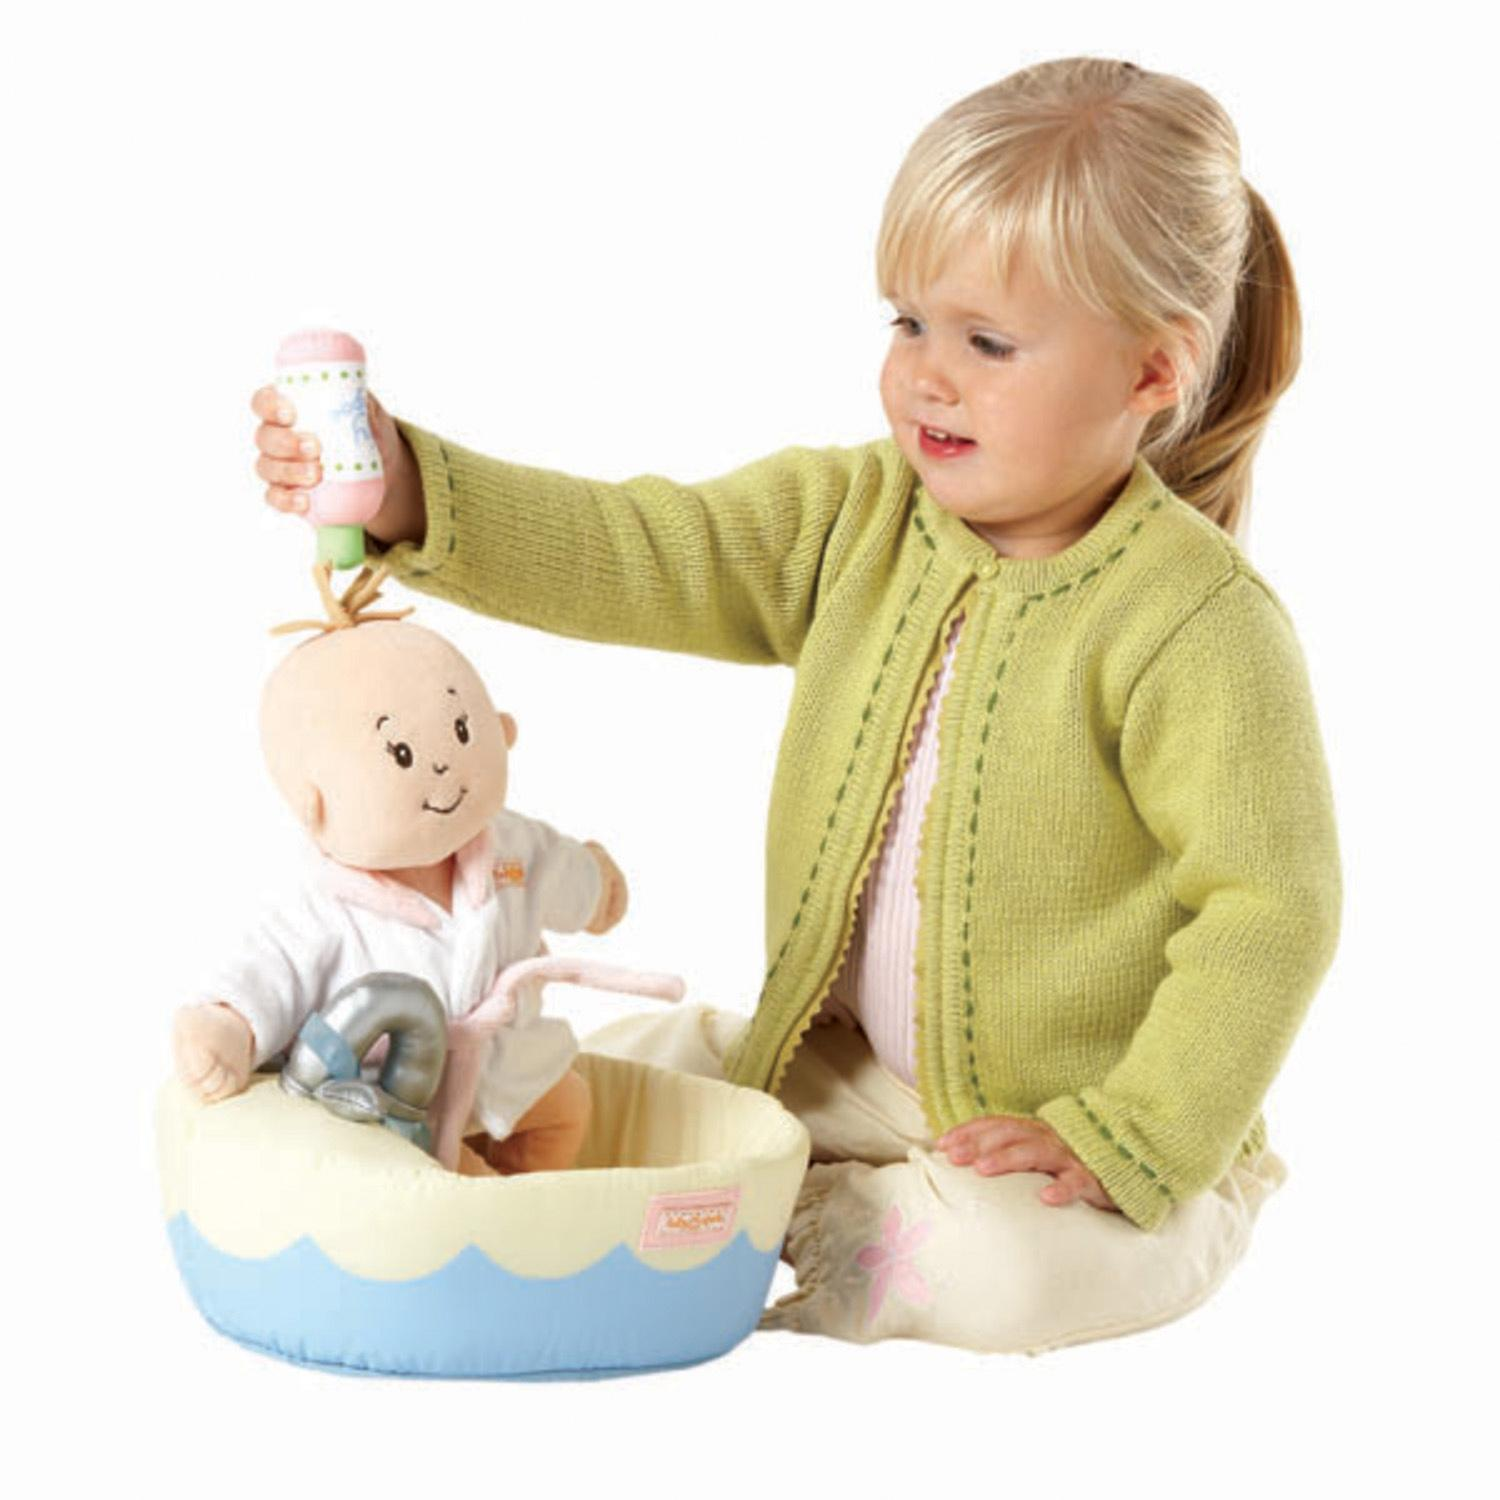 Toys For Girls Age 15 : Manhattan toy baby stella blonde soft nurturing first